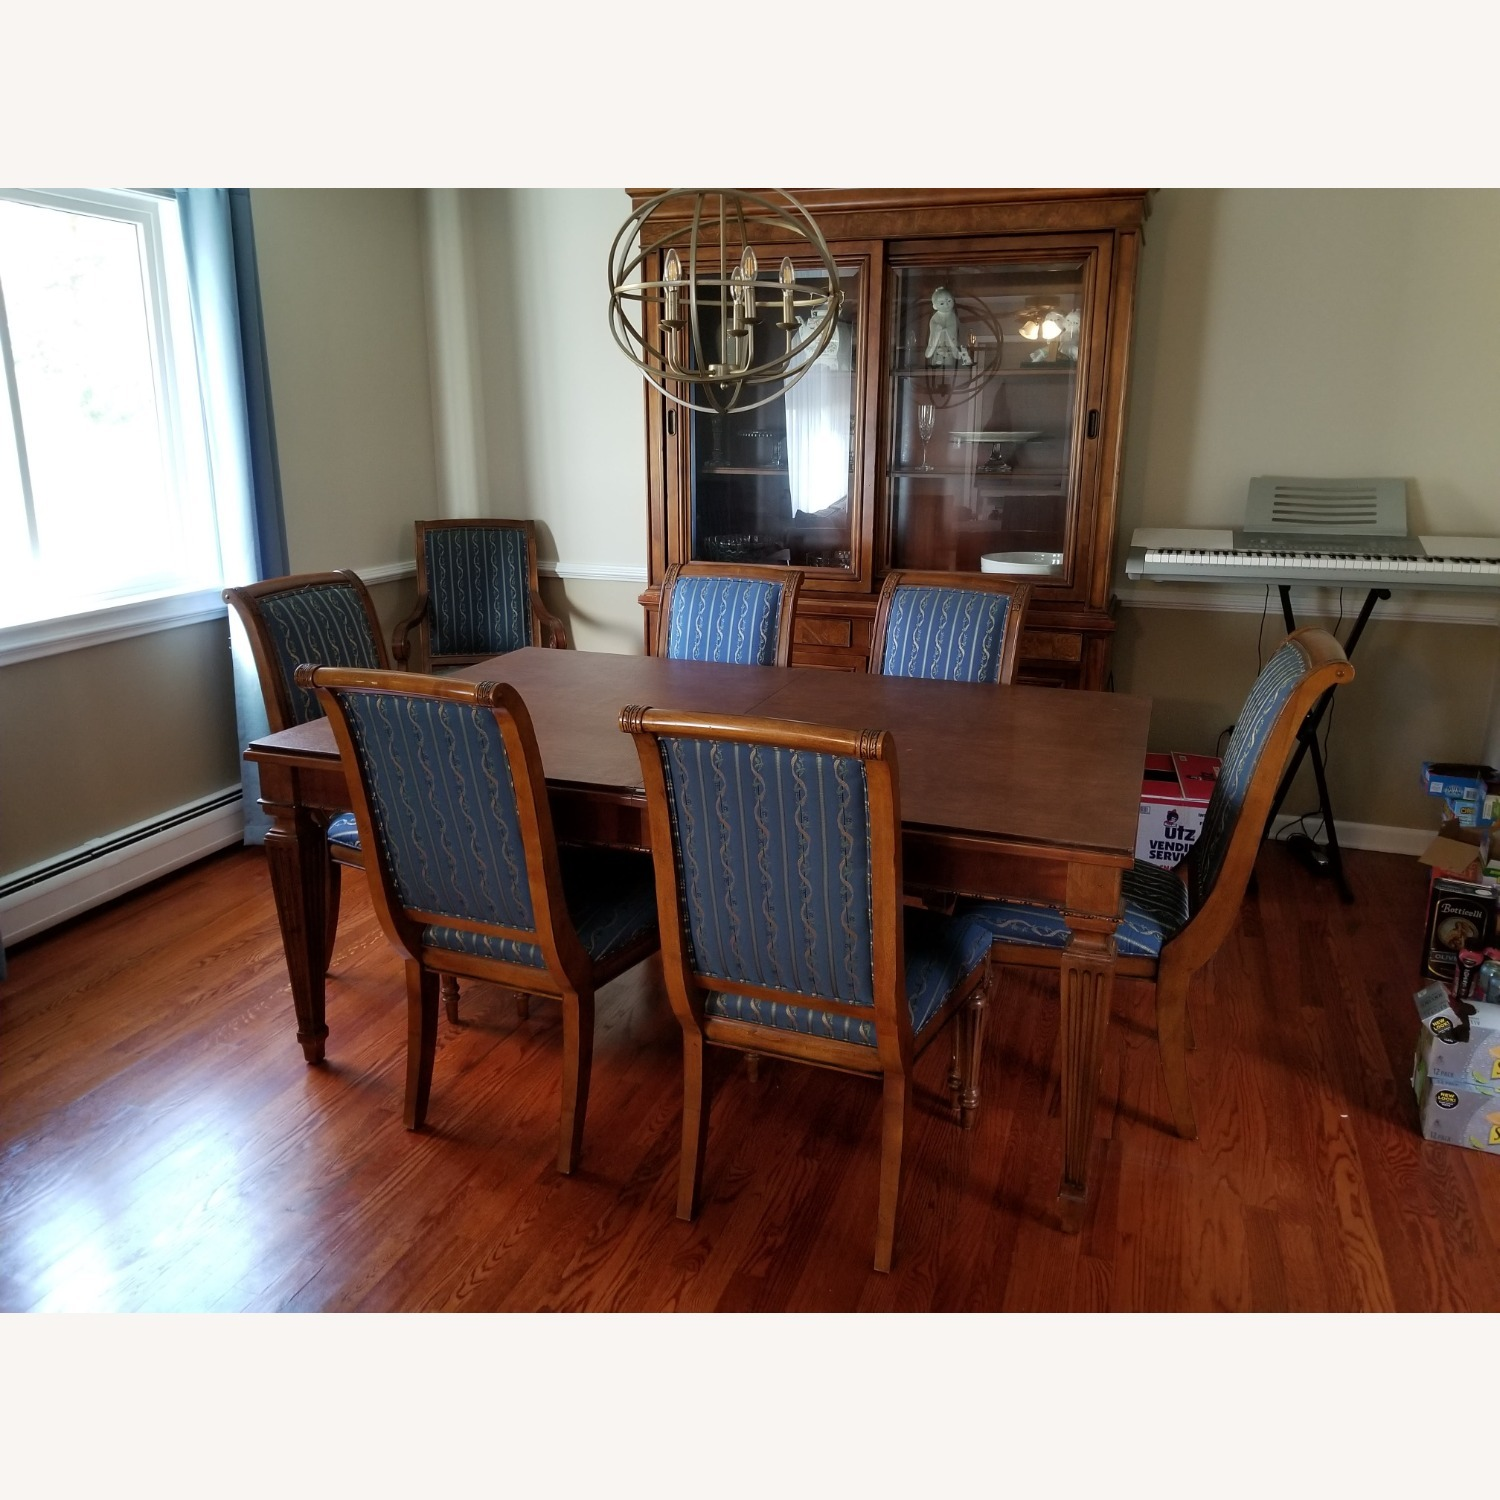 Ethan Allen Dinning Room Set w/8 chairs - image-1